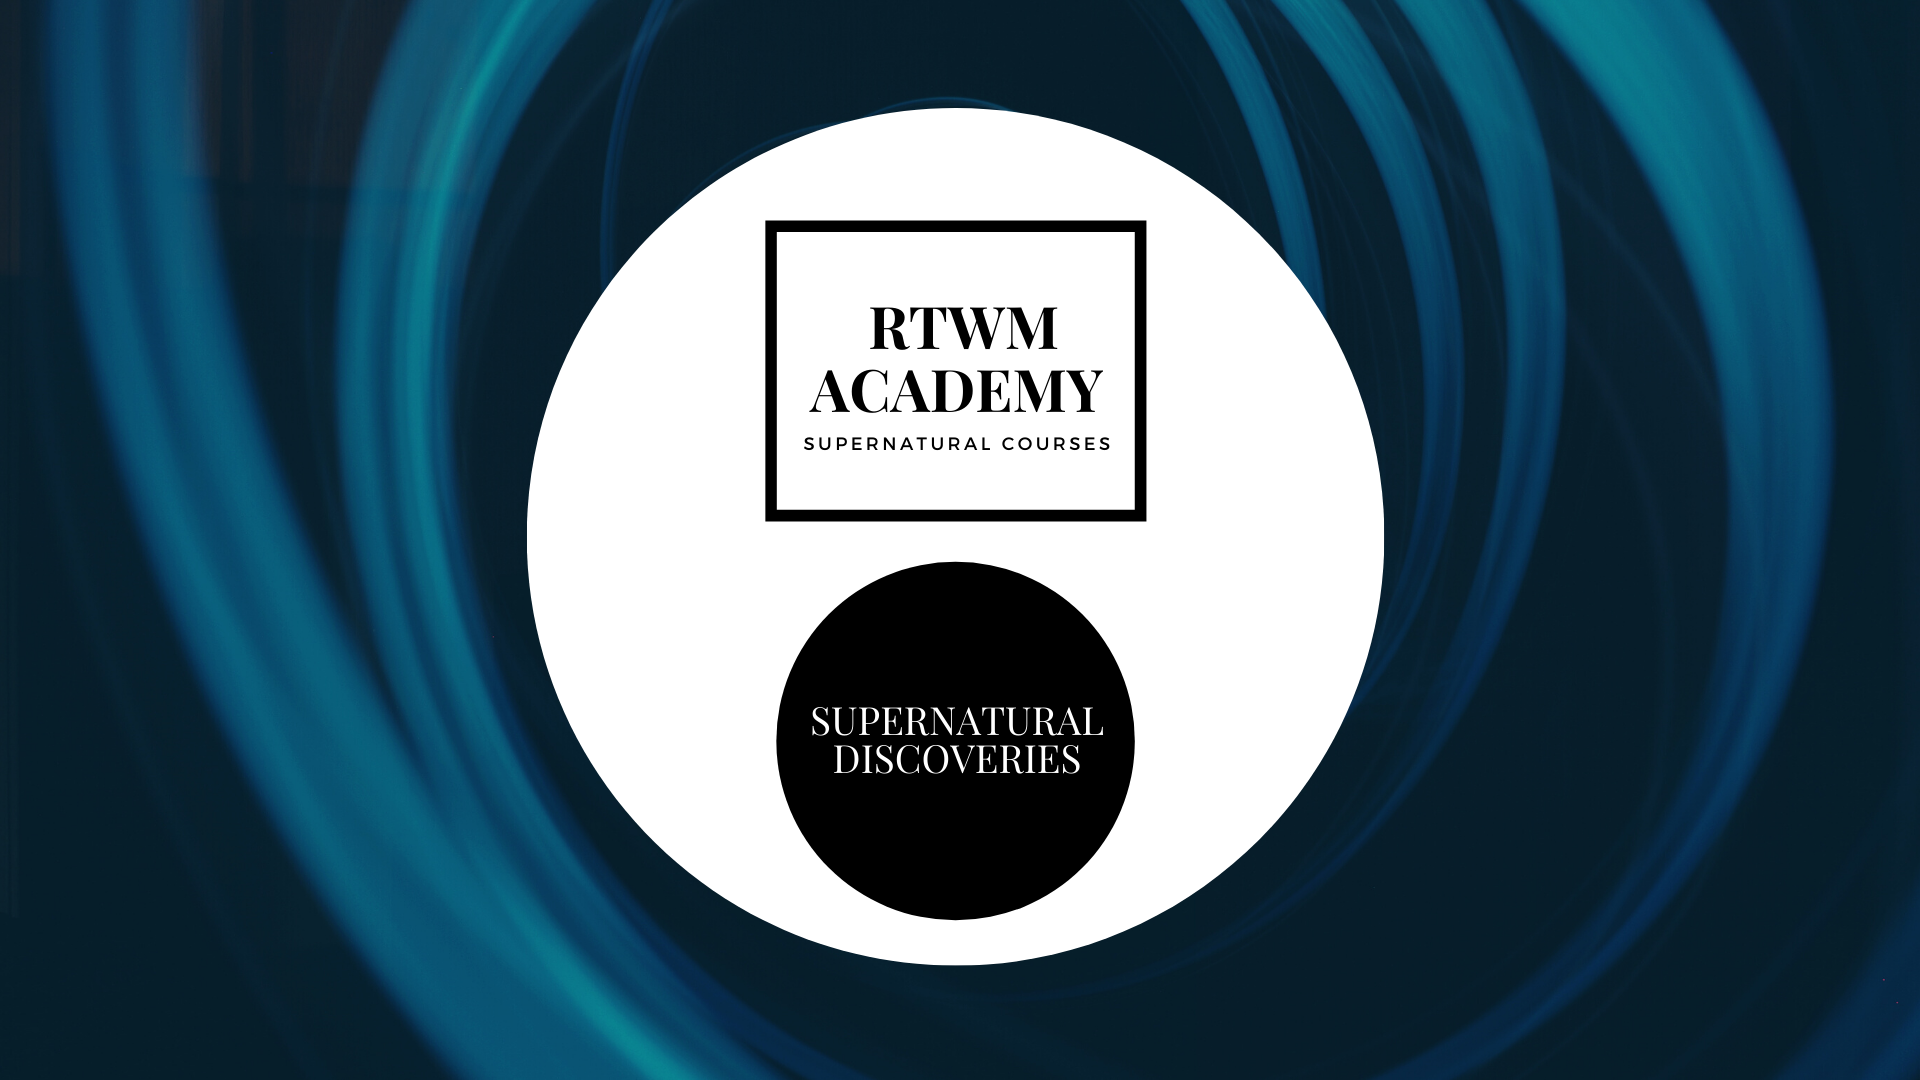 RTWM Supernatural Academy : Watch Learn and Become